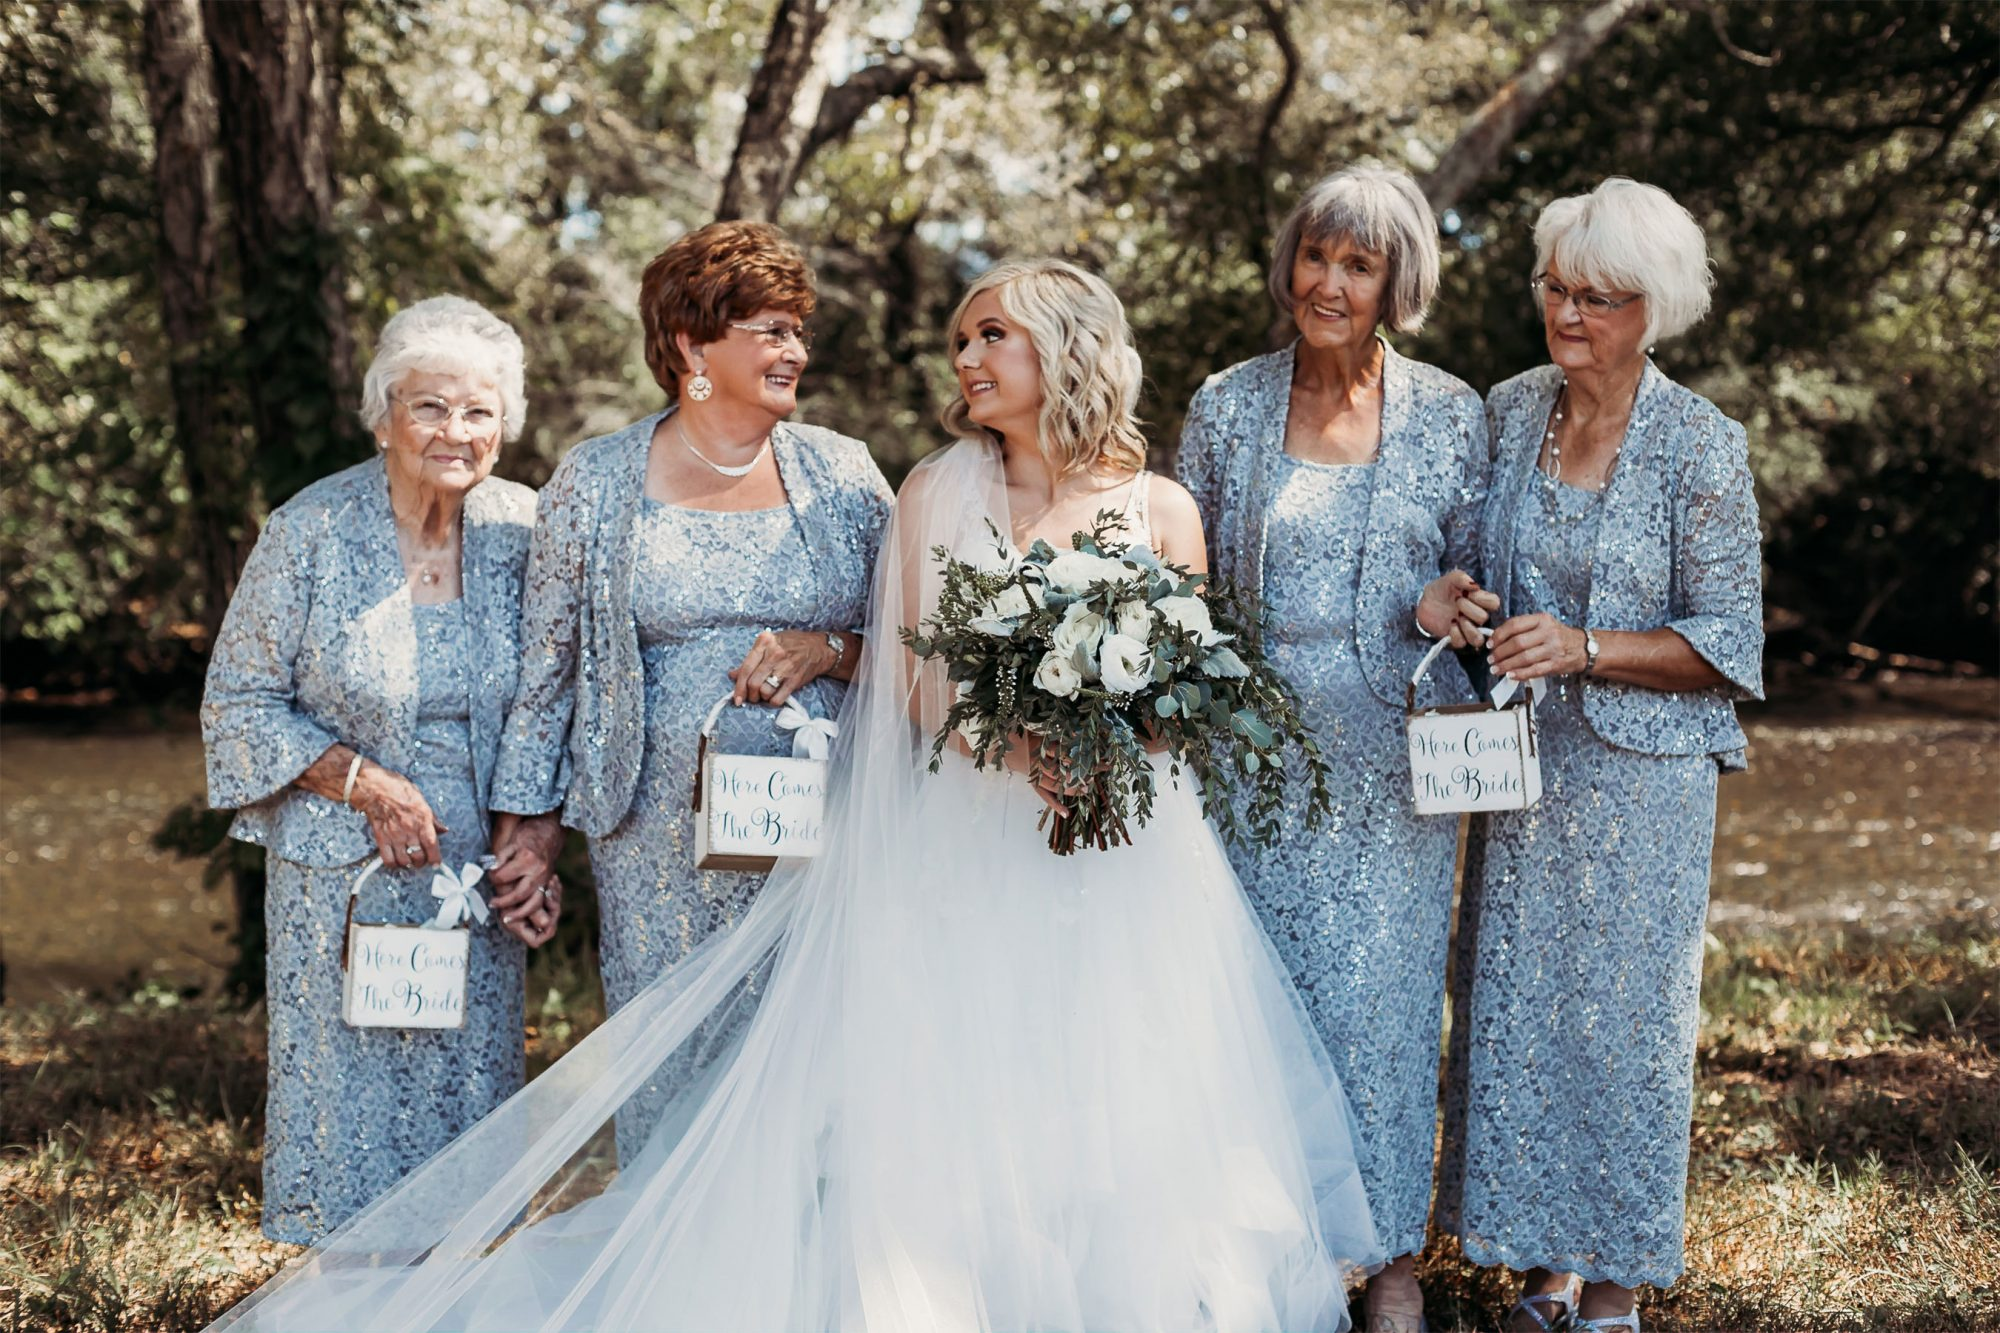 Lyndsey Raby and her 4 grandmothers as flower girls